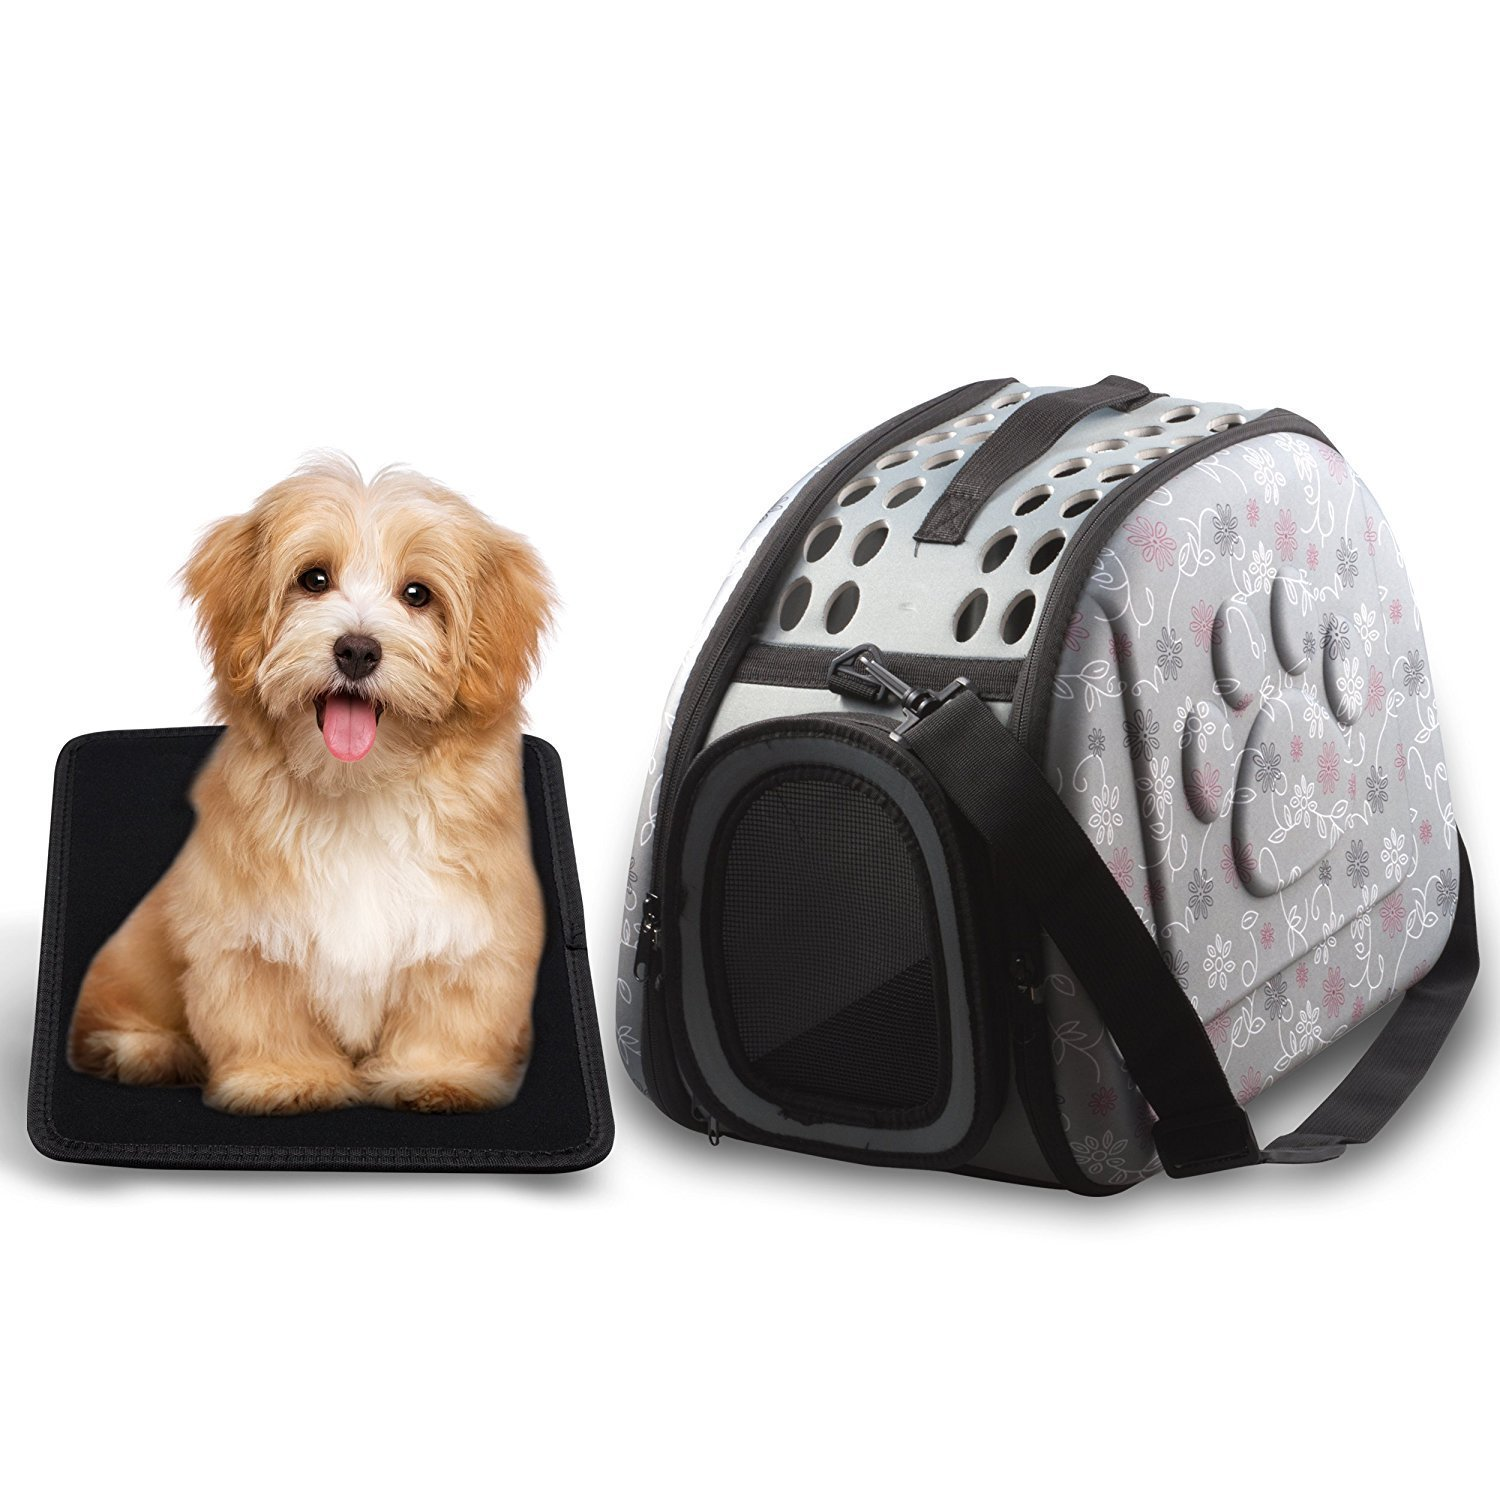 Foldable Pet Dog Cat Carrier Cage Collapsible Travel Kennel - Portable Pet Carrier Outdoor Shoulder Bag for Puppy Dog Cat Small Medium Large Animal (M, Grey)